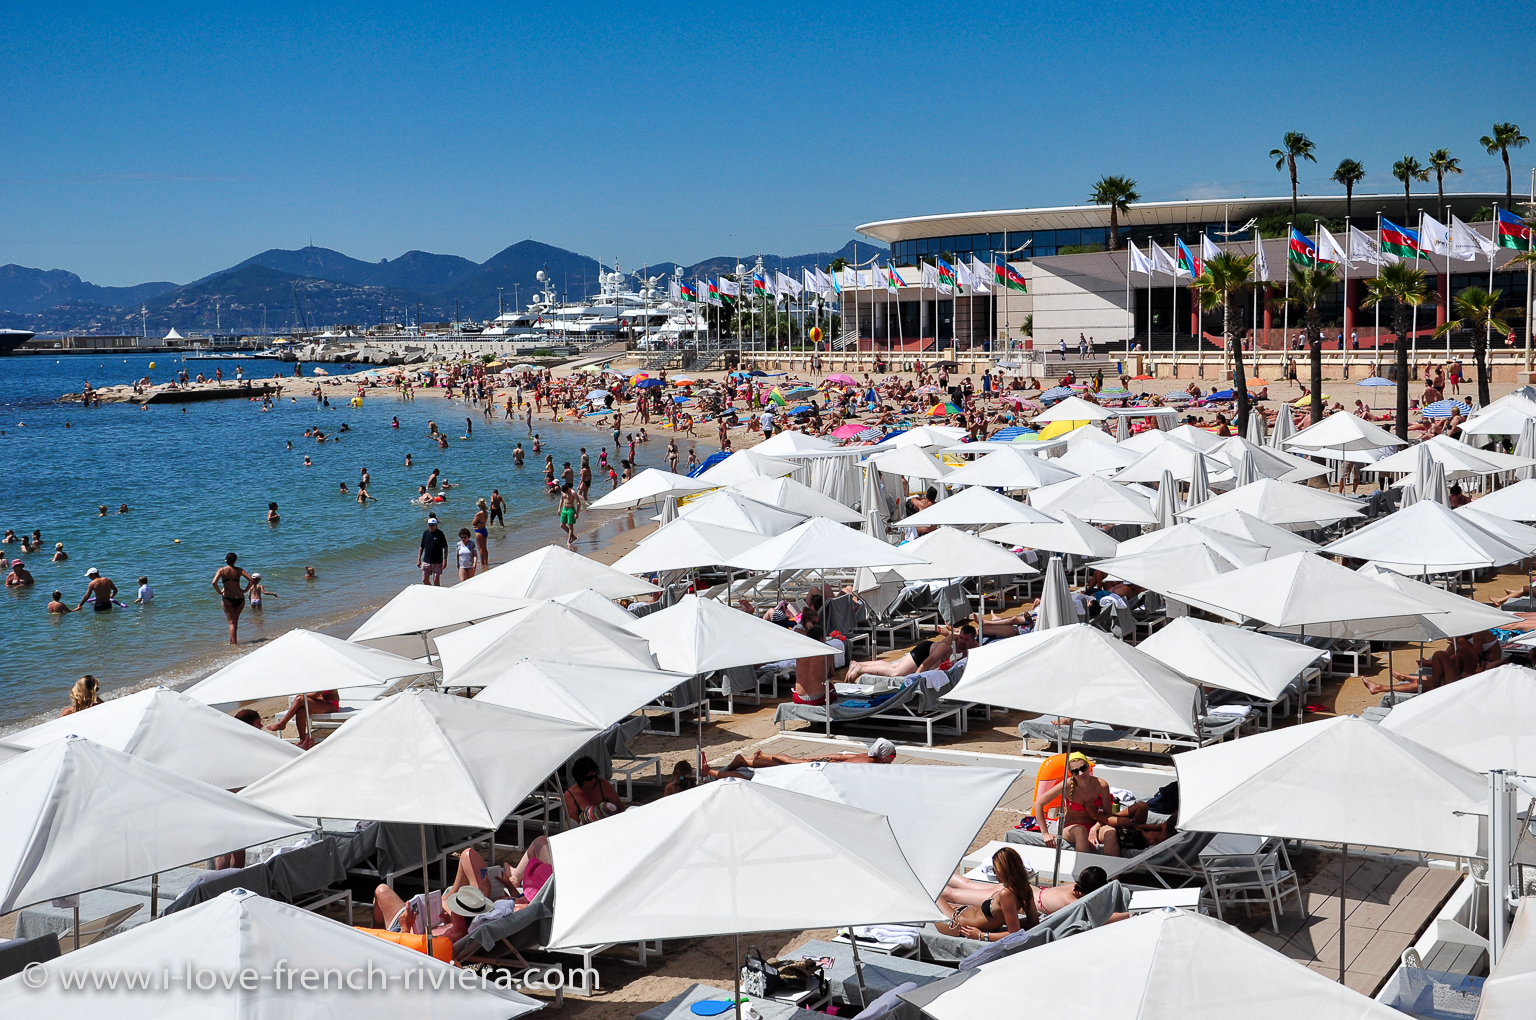 Cannes and its famous Palais des Congres, the Croisette and its beaches are easily accessible. Just take the bus #22 in front of our holiday apartment in La Napoule.